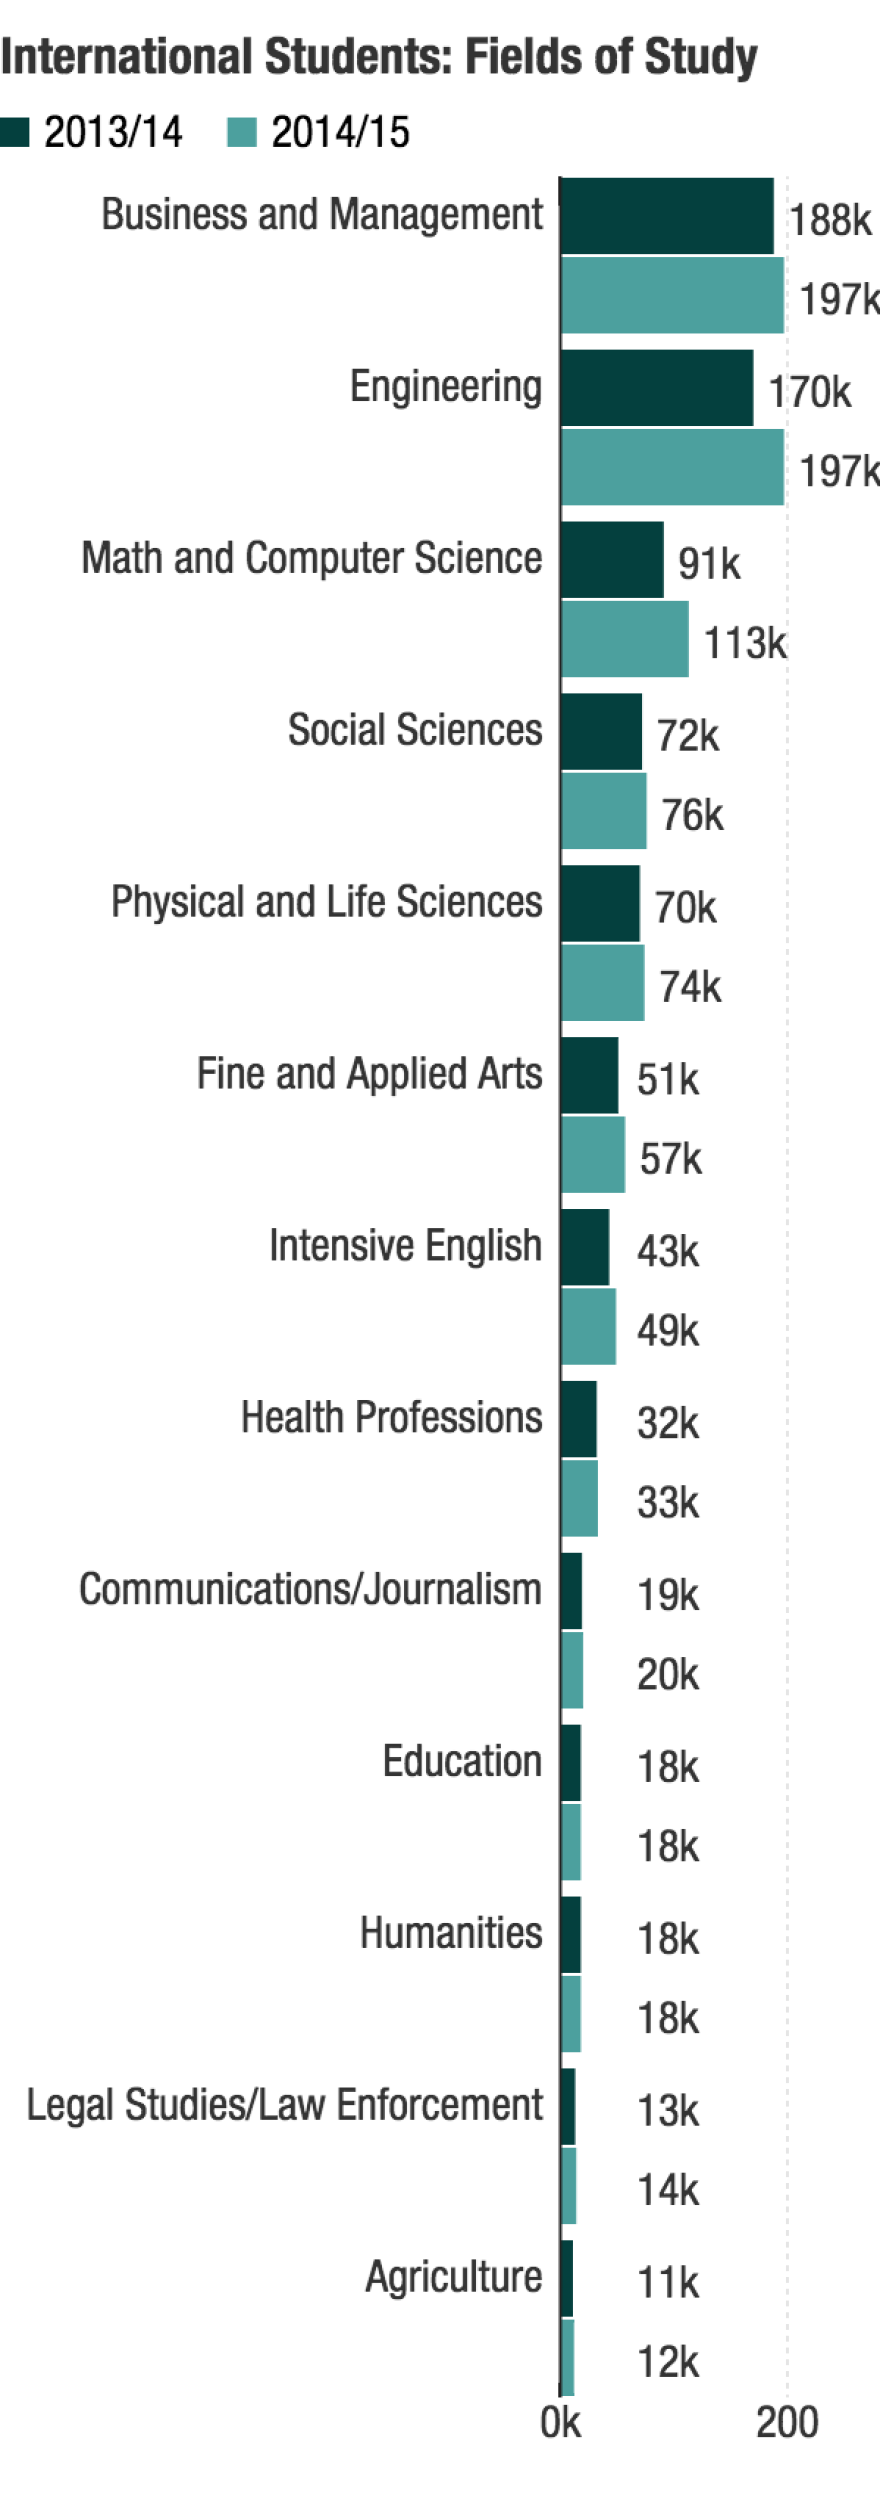 Data from The Institute of International Education Open Doors Report, 2015.